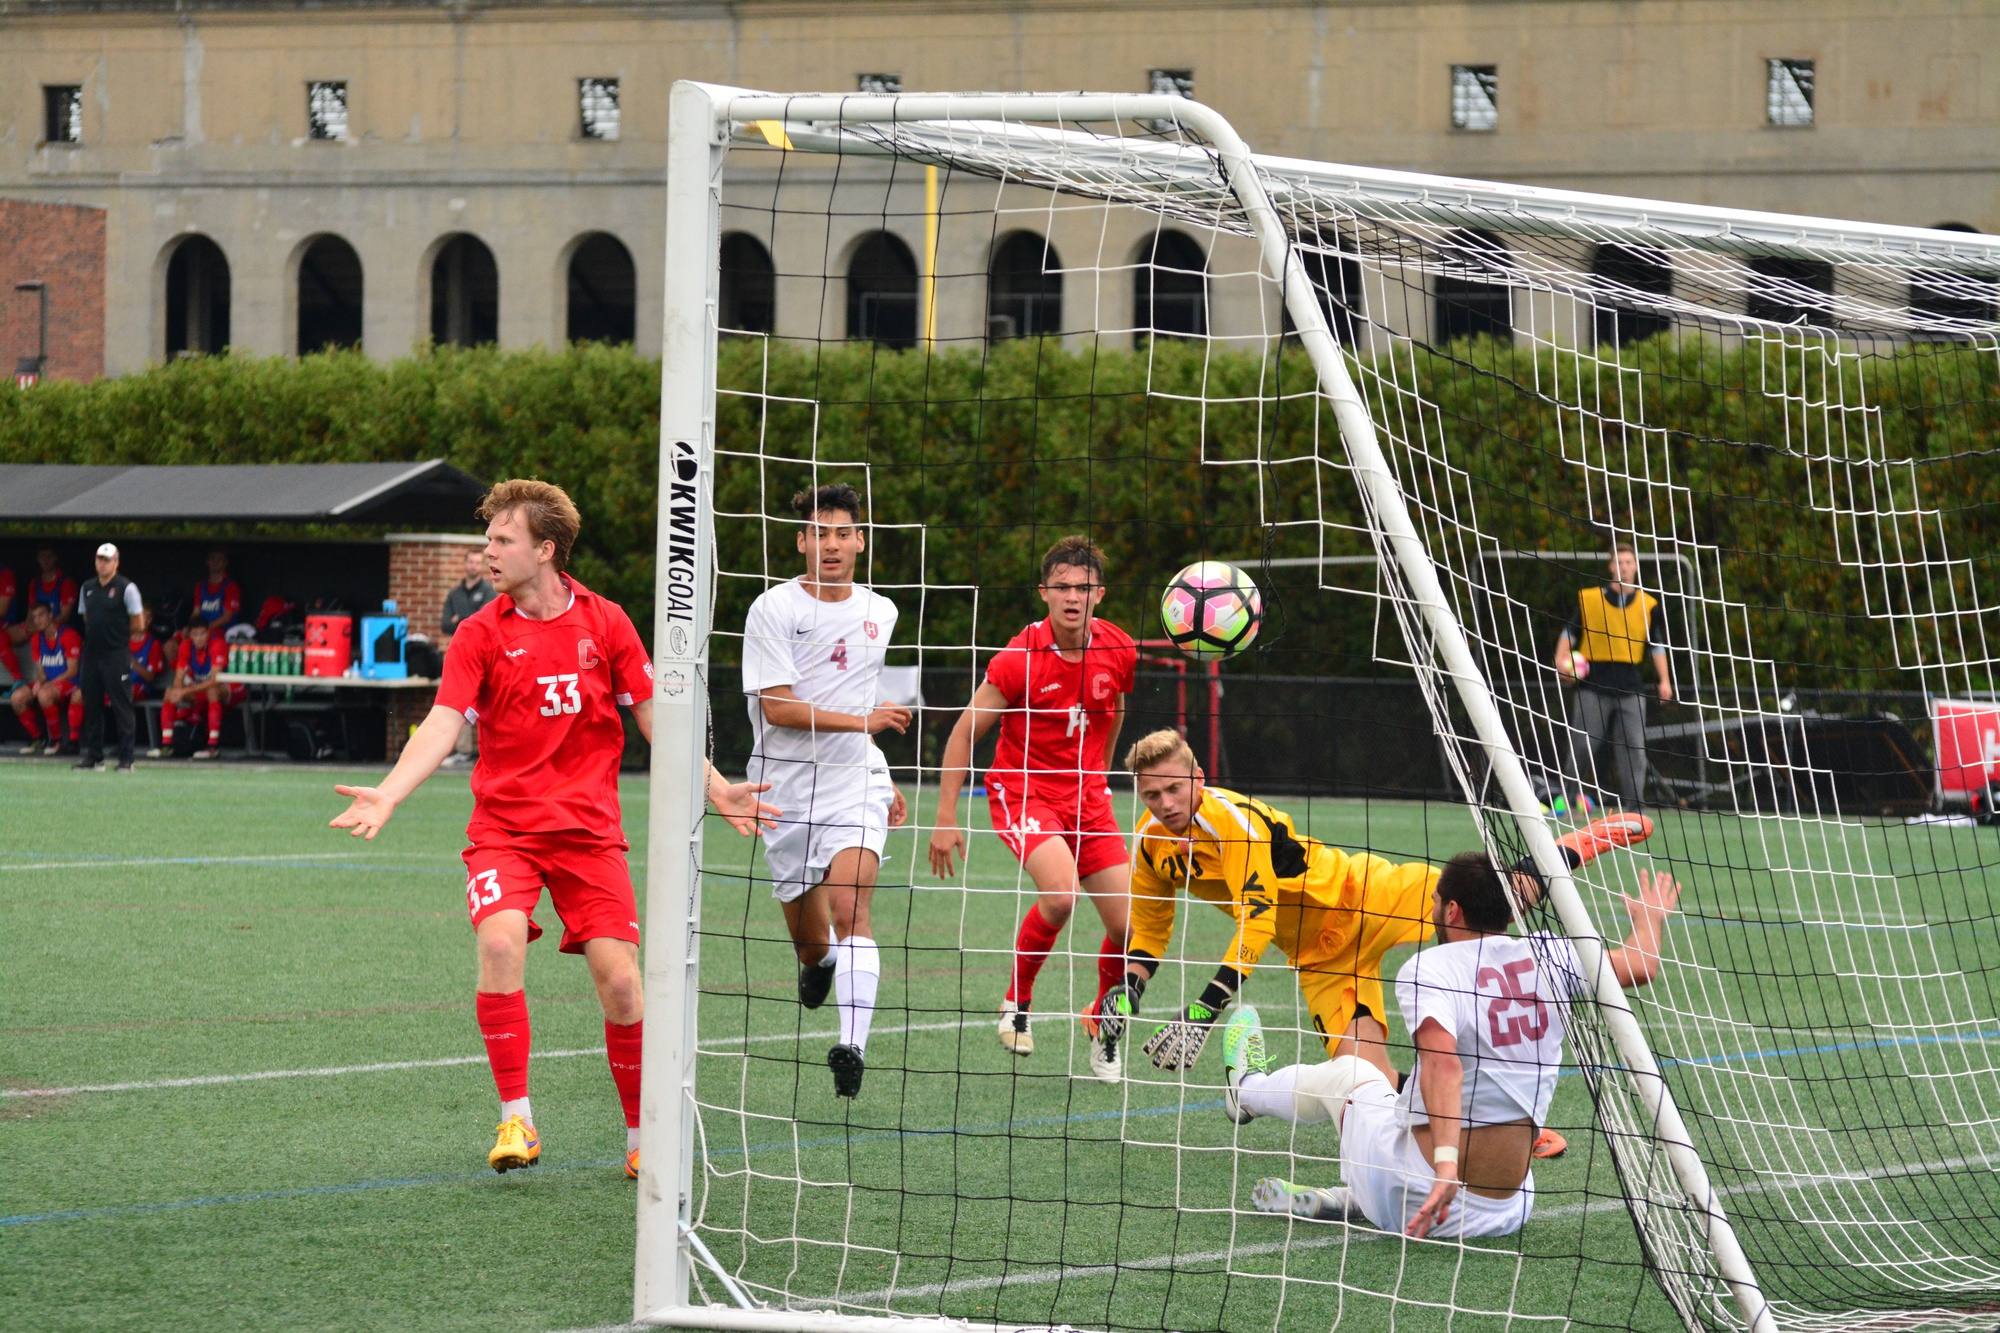 Harvard men's soccer in action against Cornell earlier this season. The team was recently sanctioned by the NSCAA, revoking all awards eligibility.